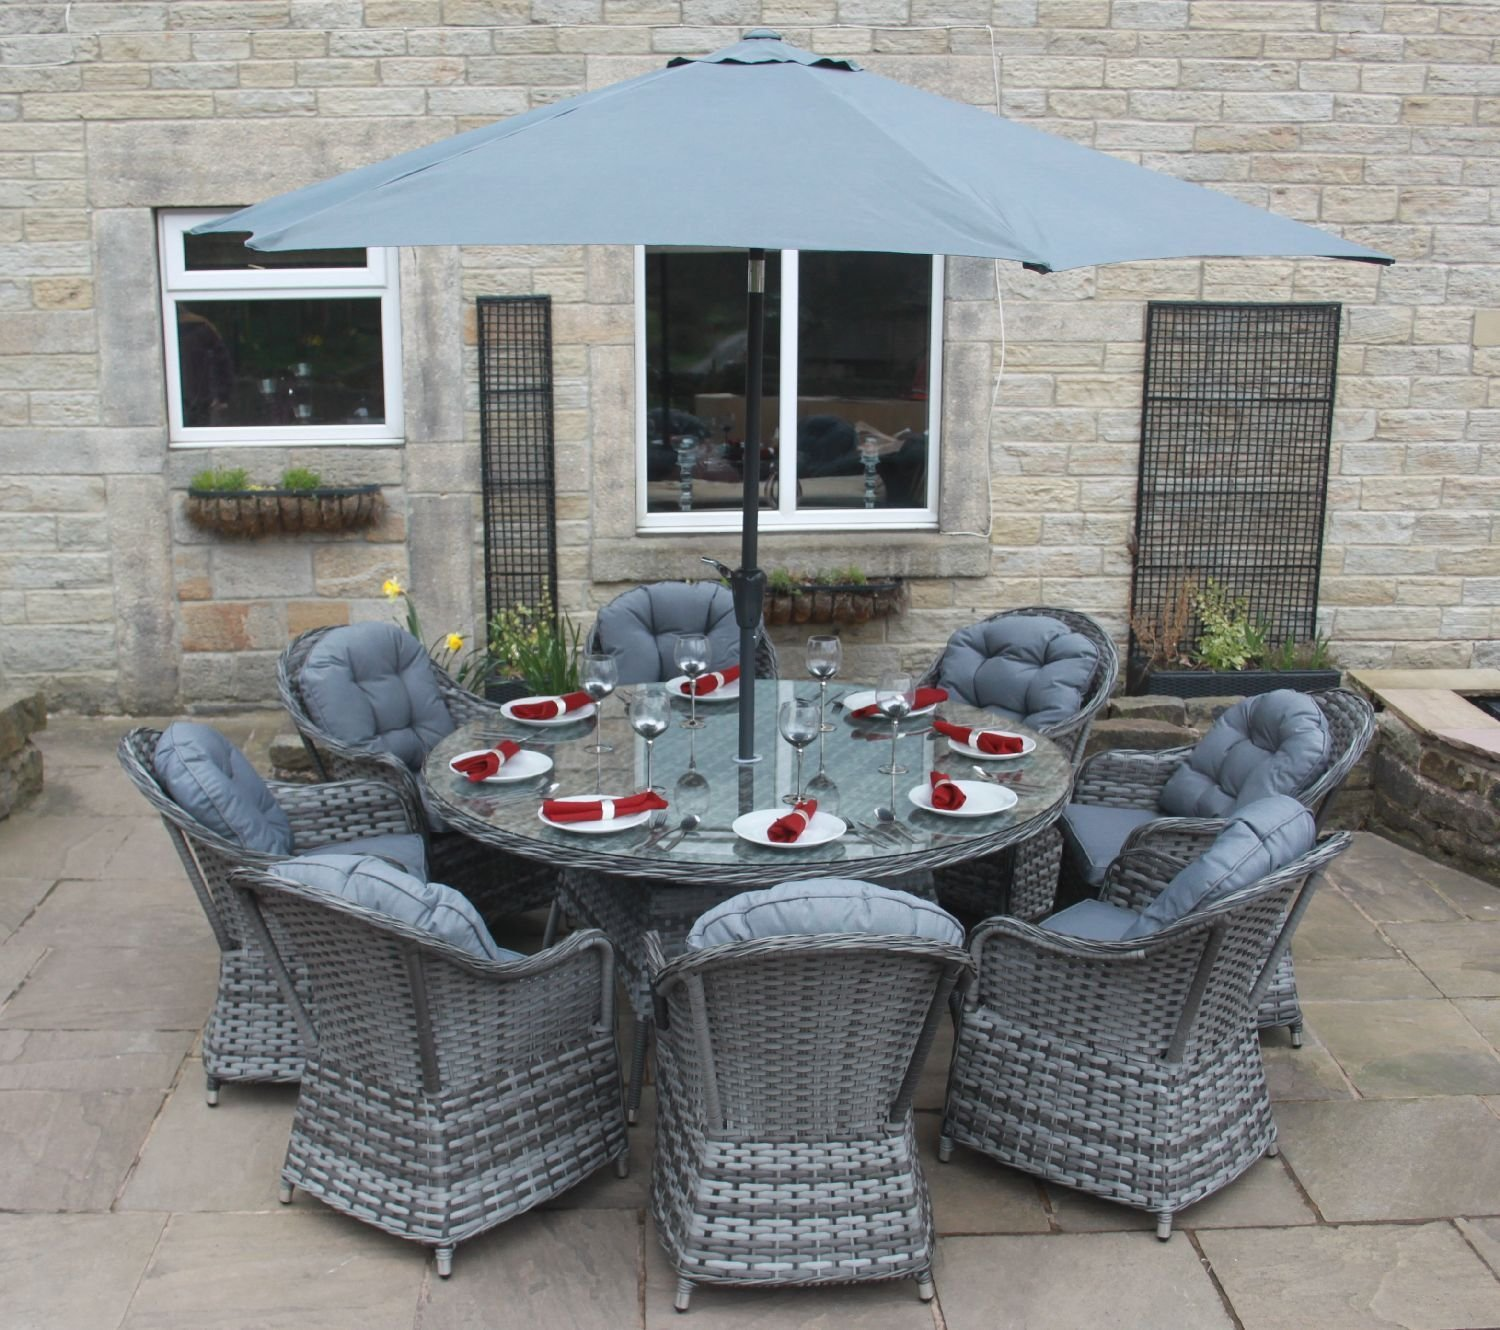 Luxury Grey Rattan Garden Furniture 8 Seat Round Dining Set with Parasol   Amazon co uk  Garden   Outdoors. Luxury Grey Rattan Garden Furniture 8 Seat Round Dining Set with